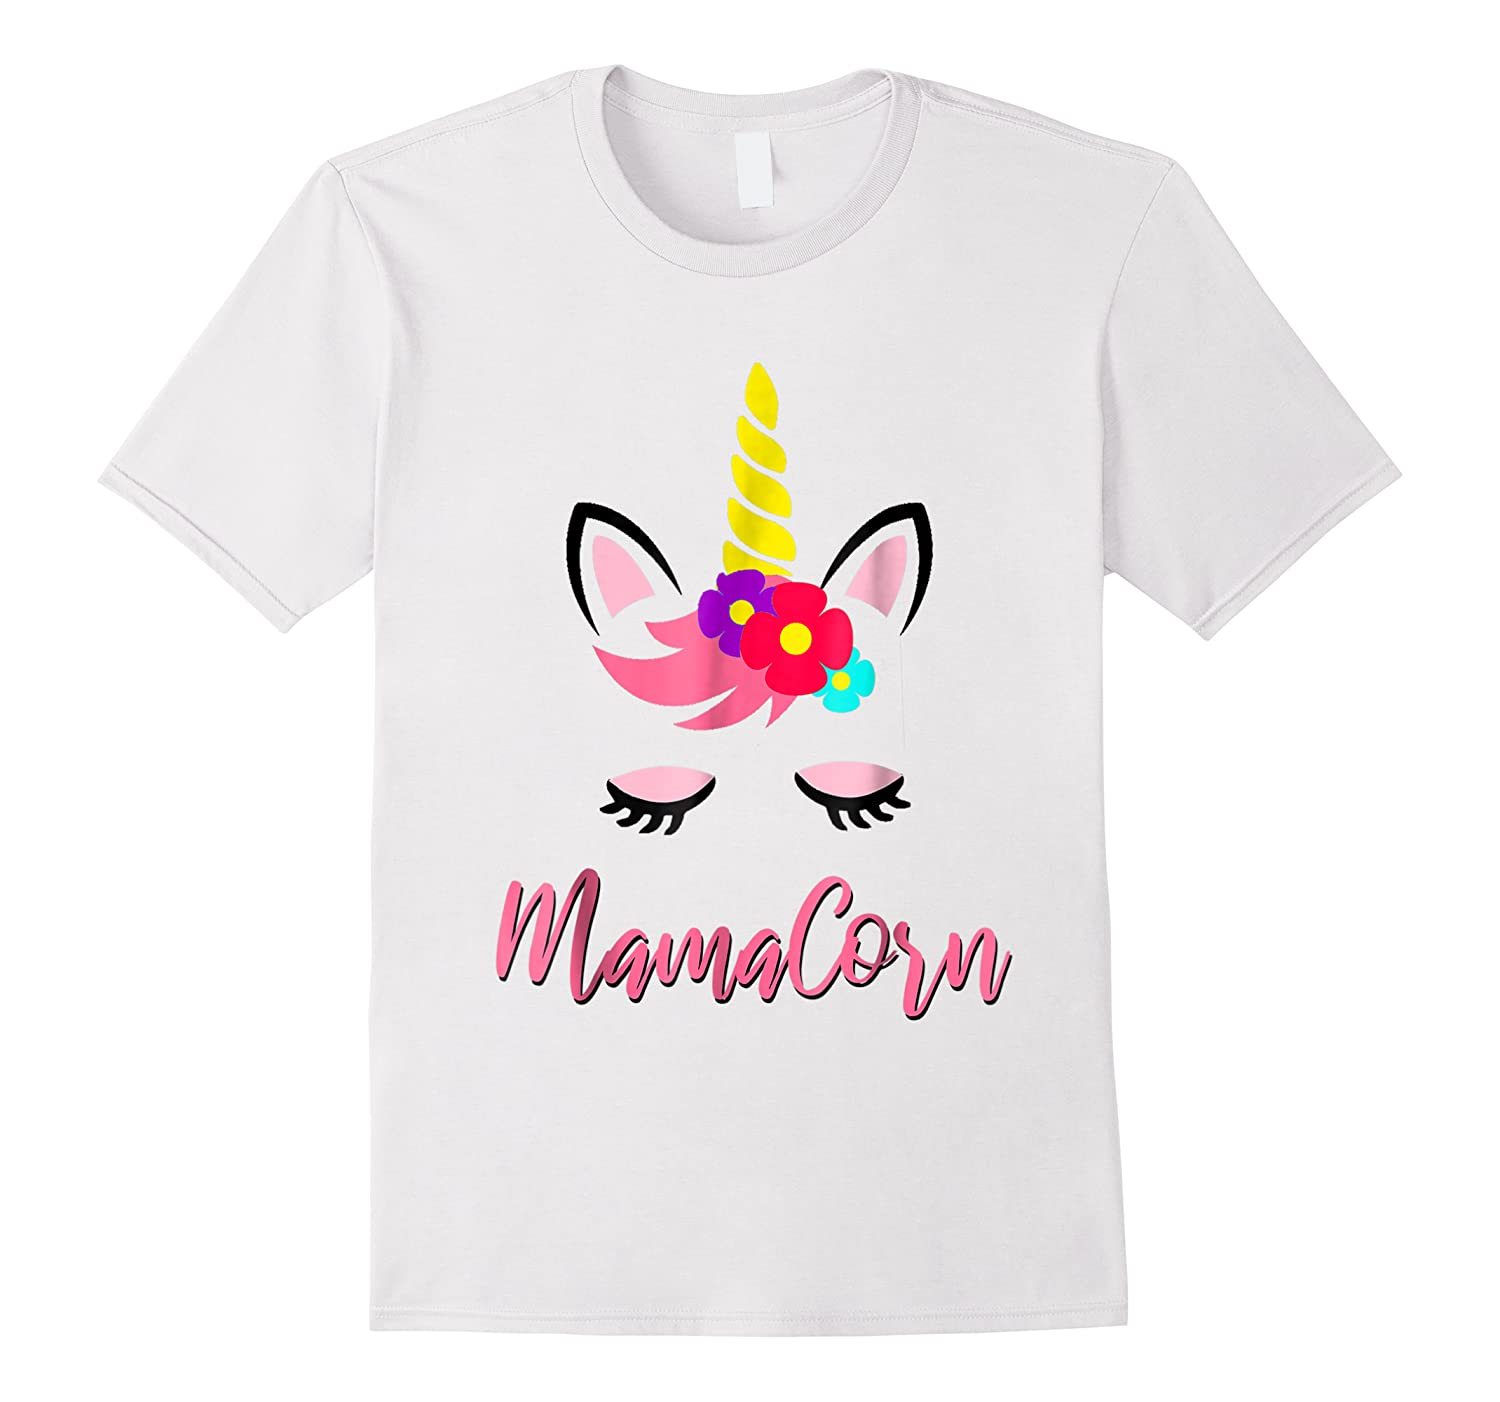 Mamacorn T Shirt Cute Funny Unicorn Gift For Mothers Day Mom